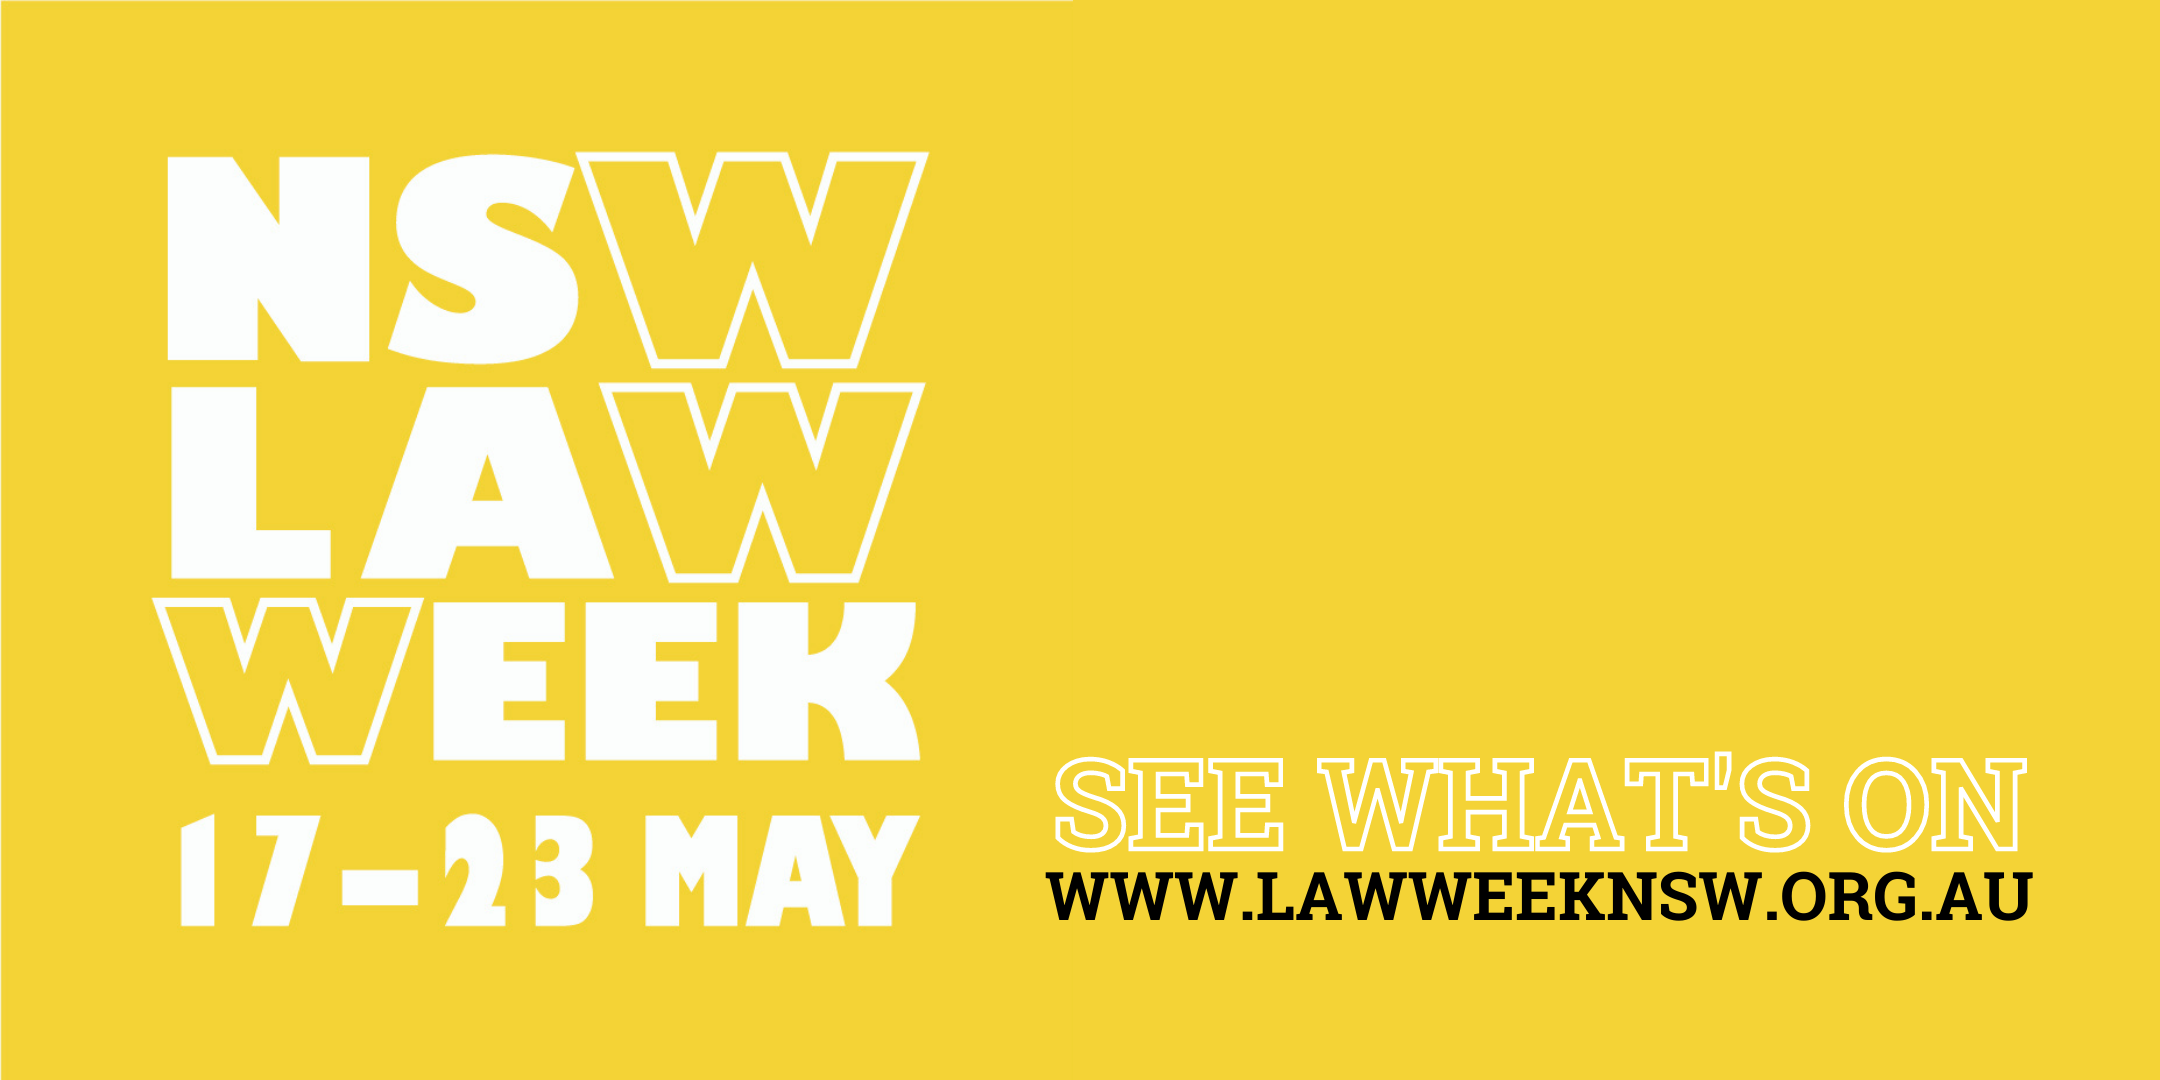 Law Week in white letters on yellow background